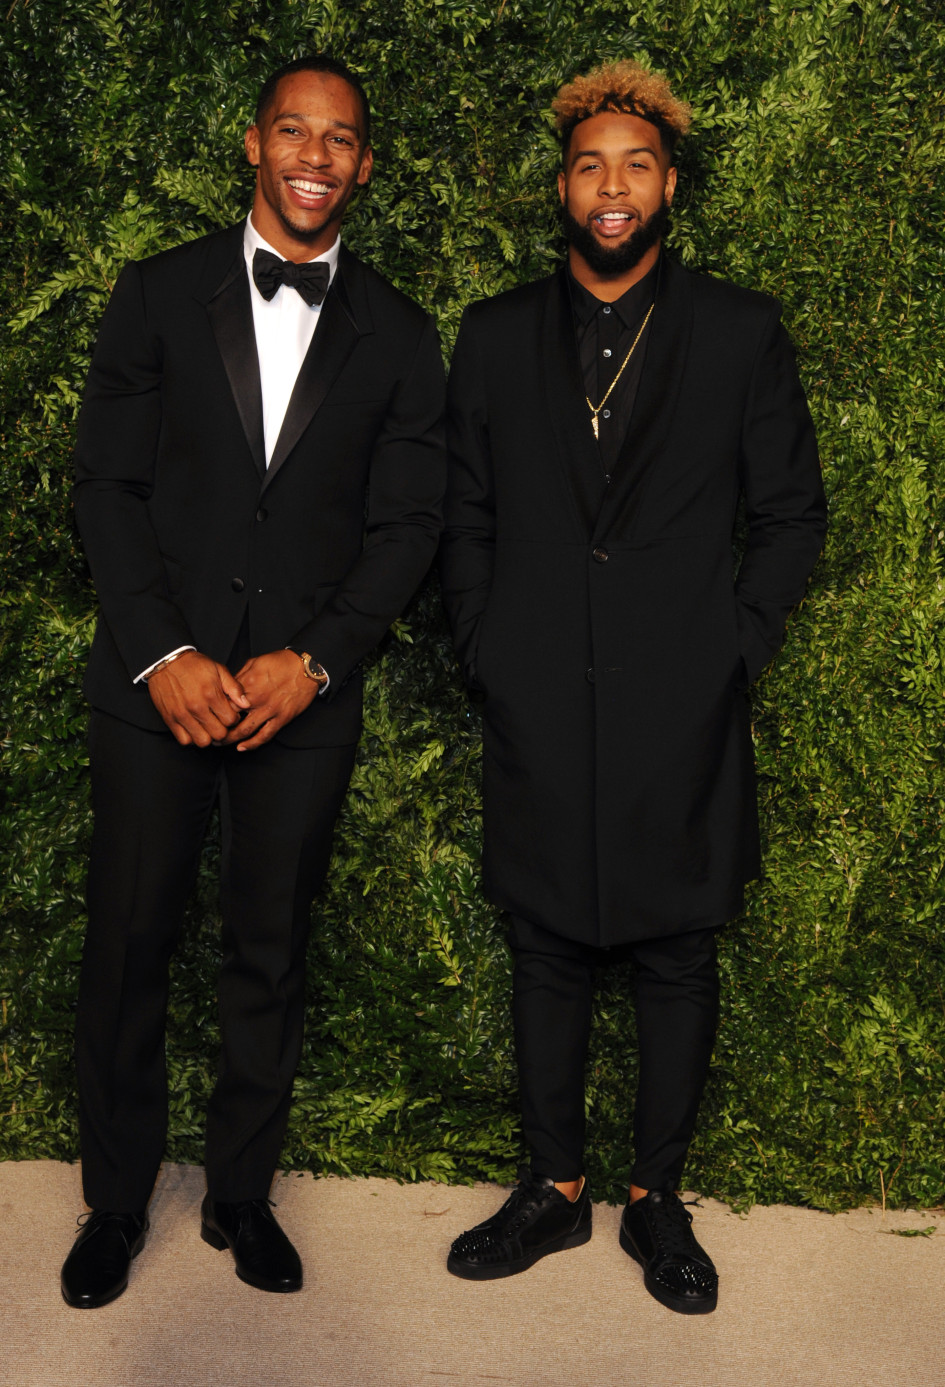 Giants Victor Cruz And Odell Beckham Jr. Attend CFDA/Vogue Fashion Fund Awards 2015